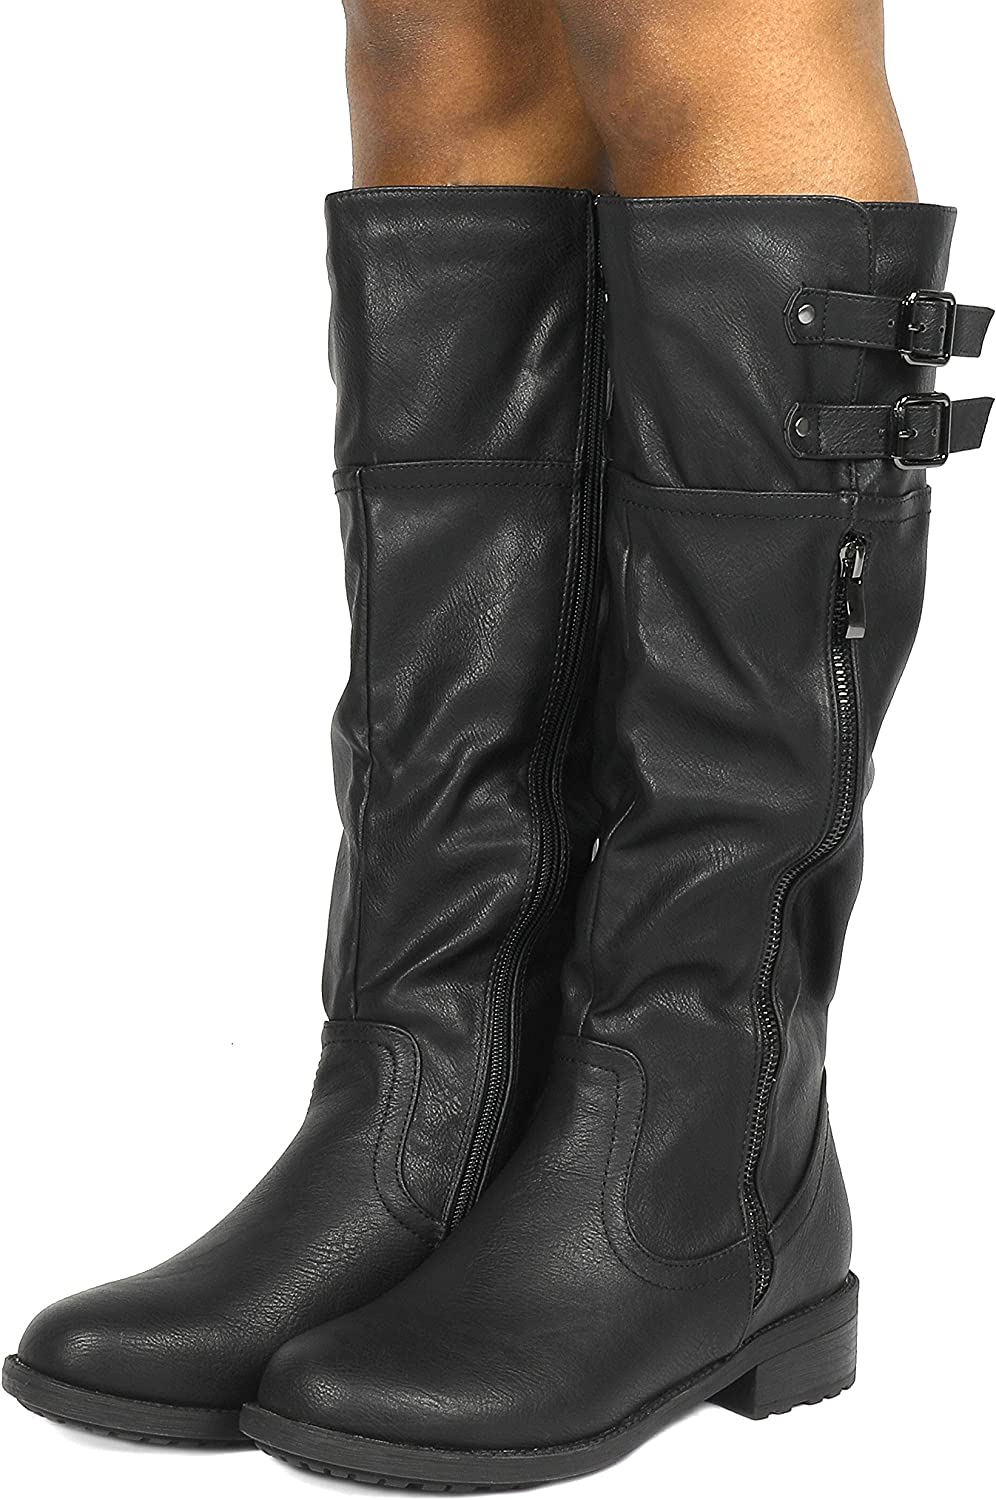 DREAM PAIRS Womens Knee High and up Riding Boots Wide-Calf